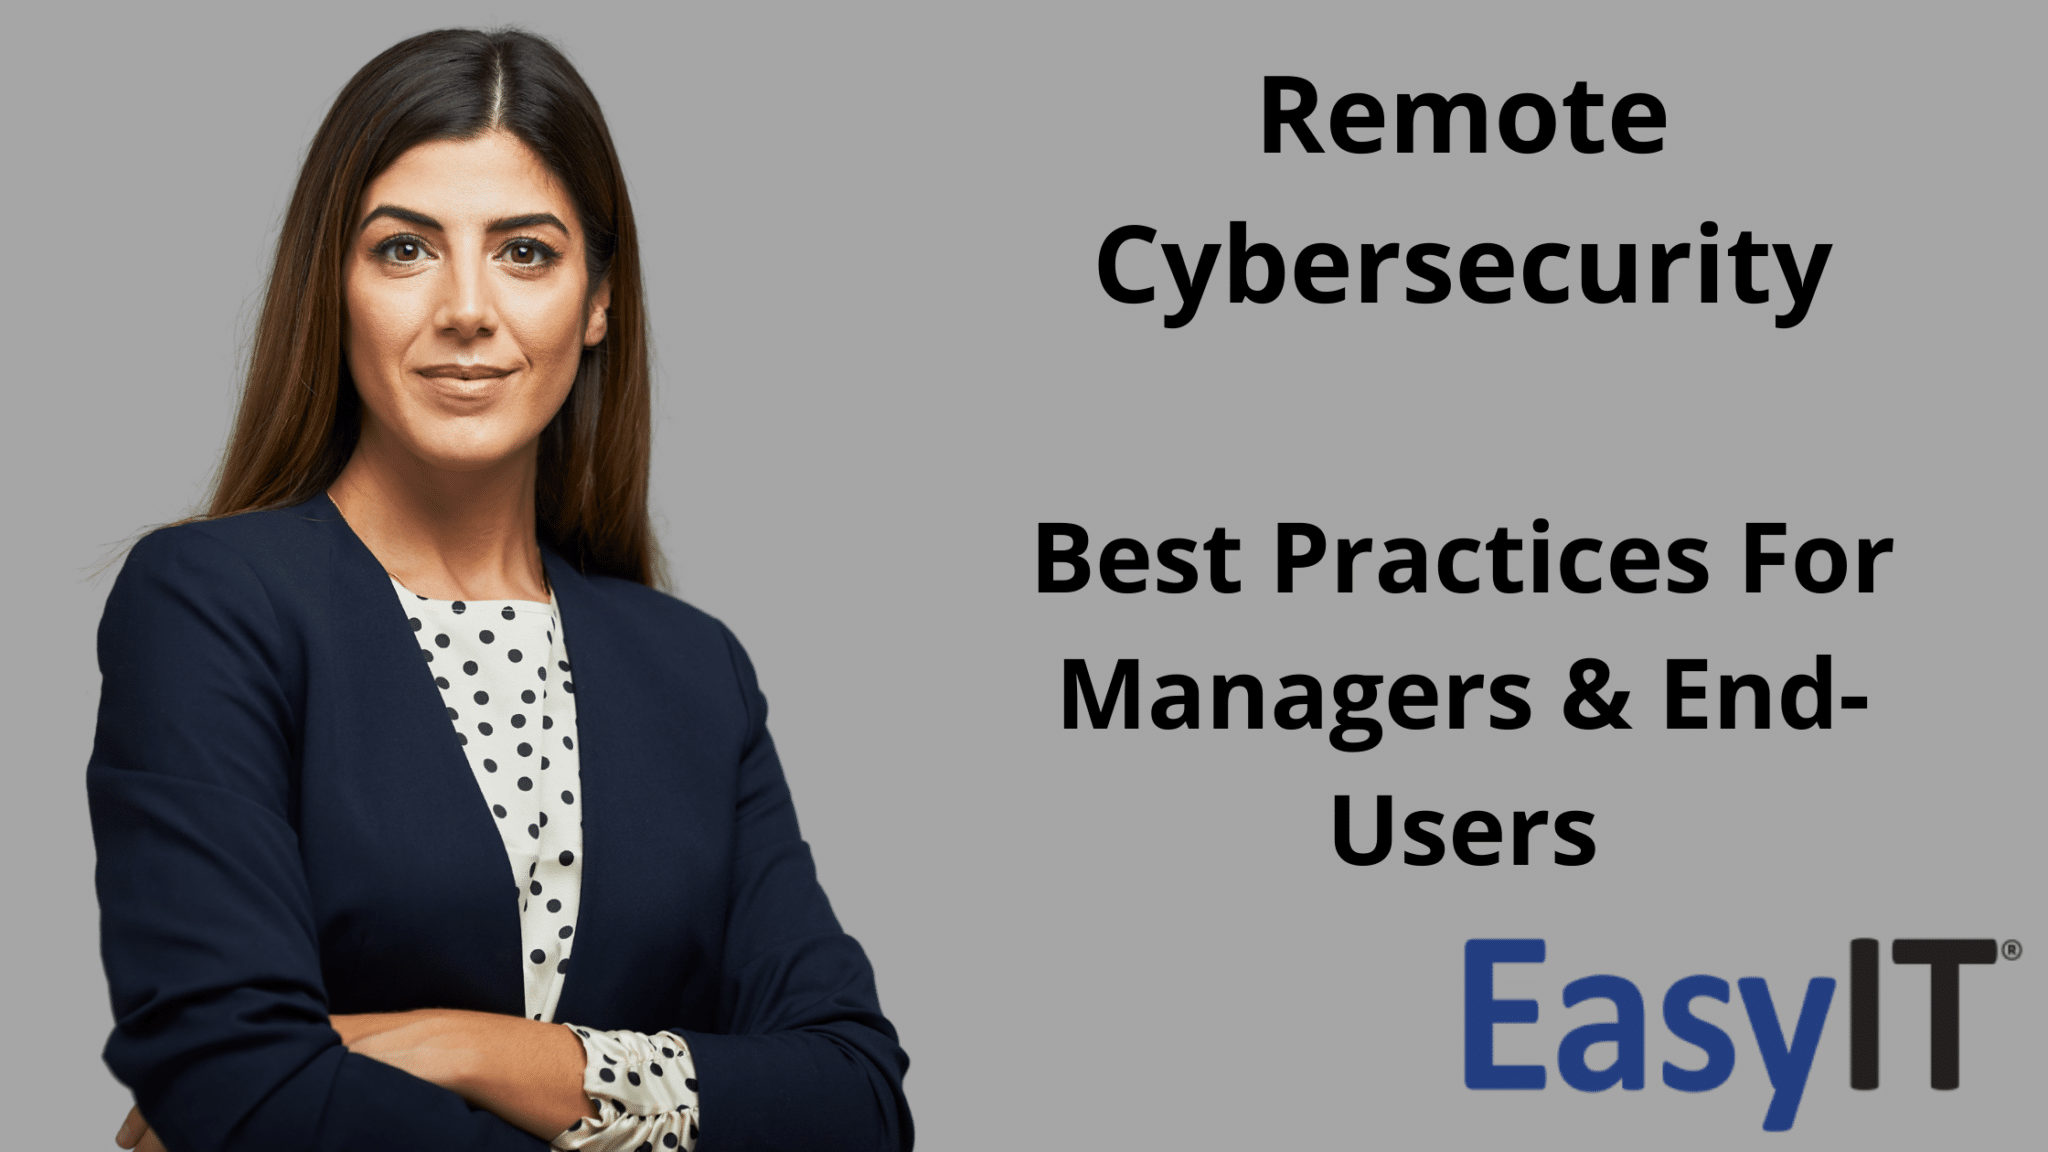 Remote Cybersecurity: Best Practices For Managers & End-Users